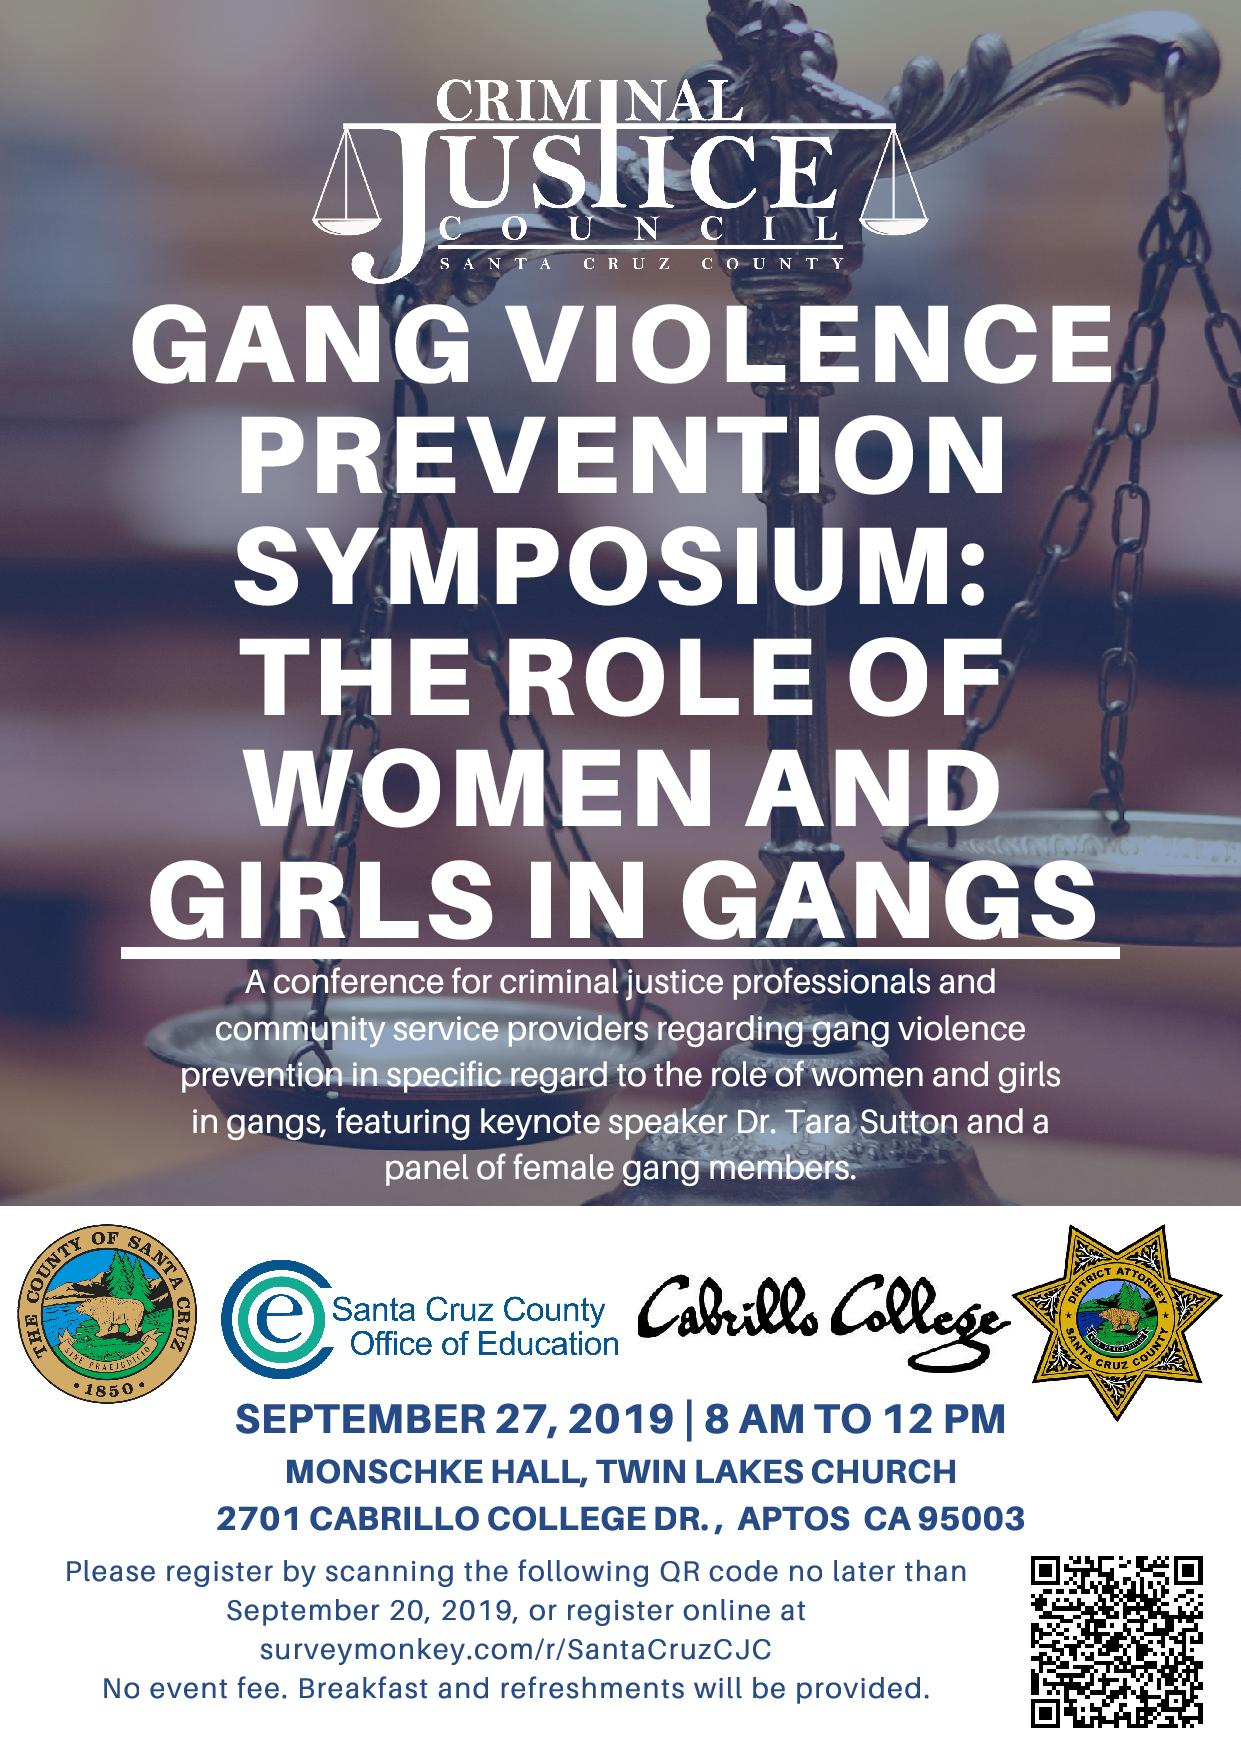 Gang Violence Prevention Symposium: The Role of Women and Girls in Gangs